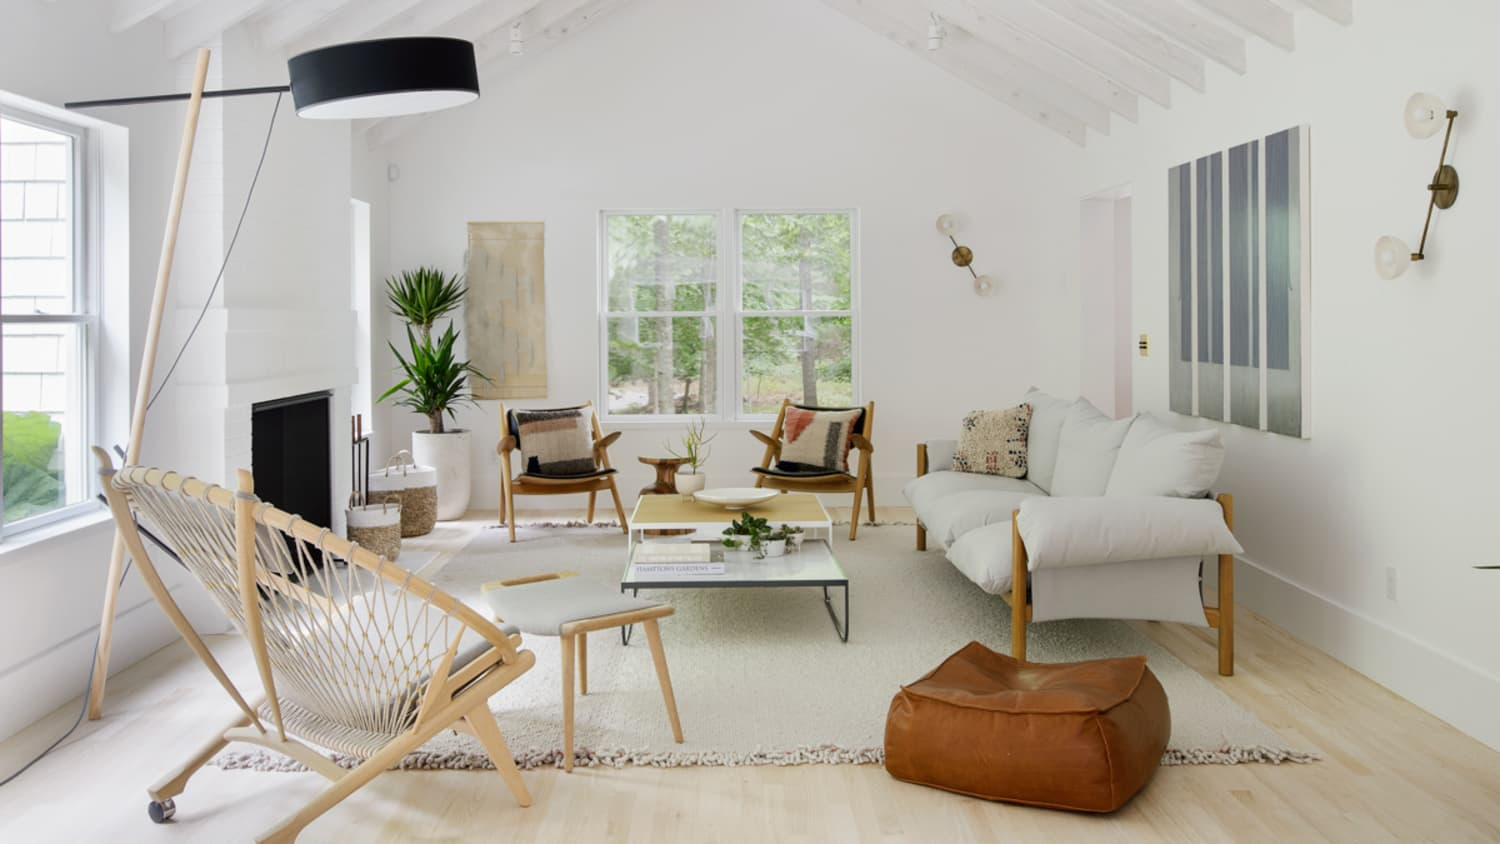 12 Minimalist Living Room Ideas - How to Use Minimalism in Living